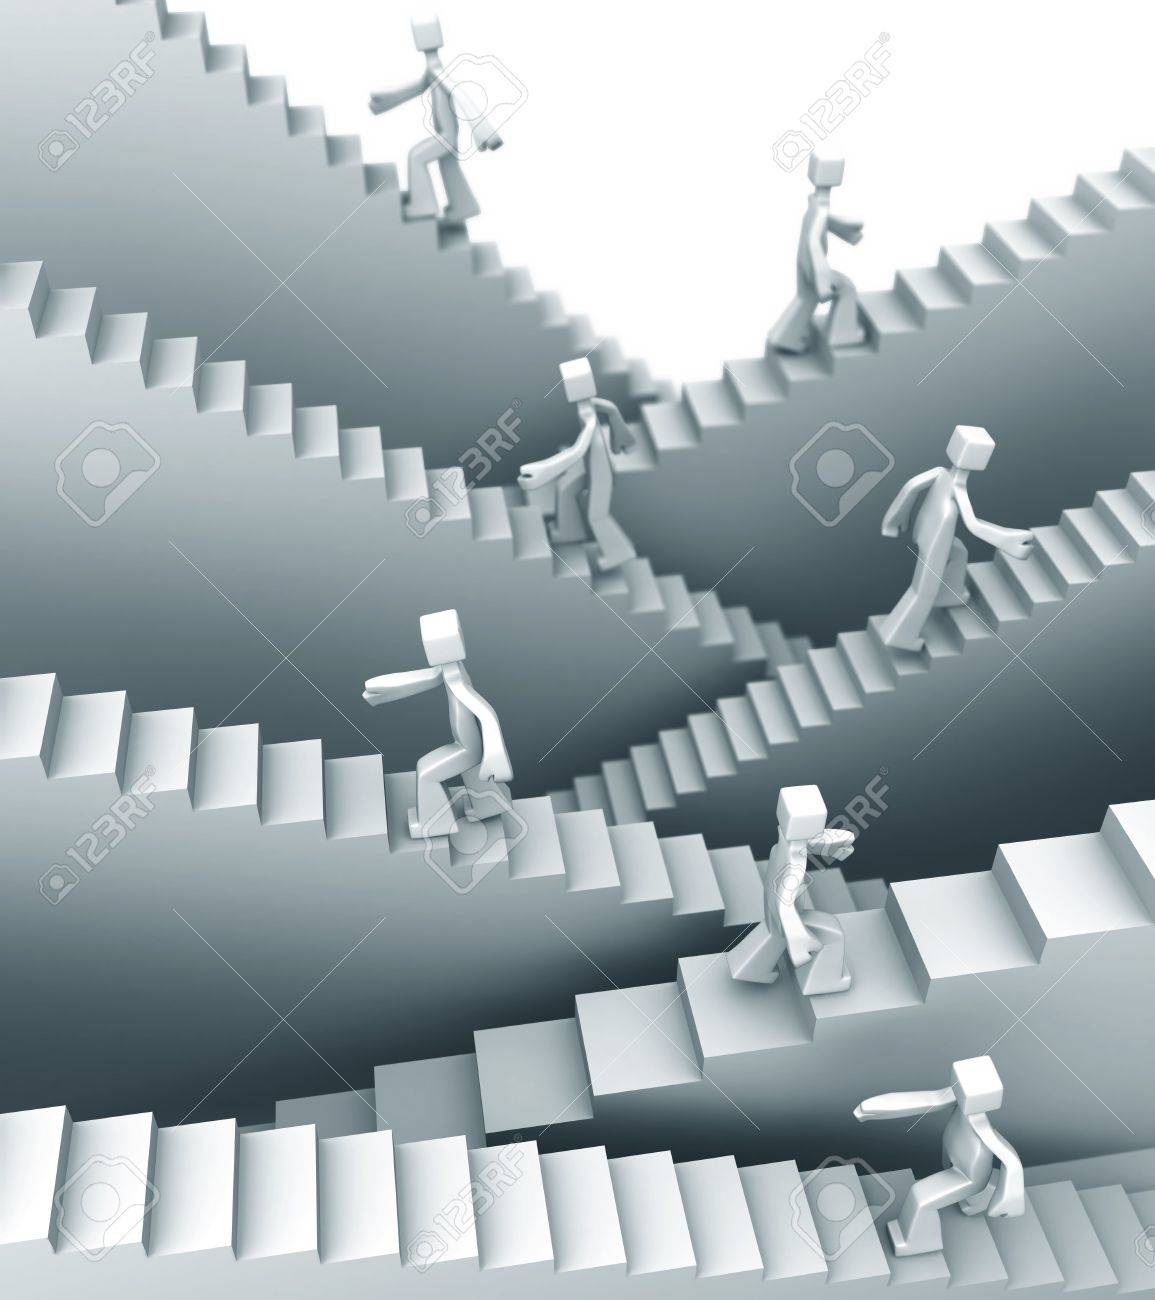 People stepping on staircase moving up direction 3d illustration Stock Photo - 5488542